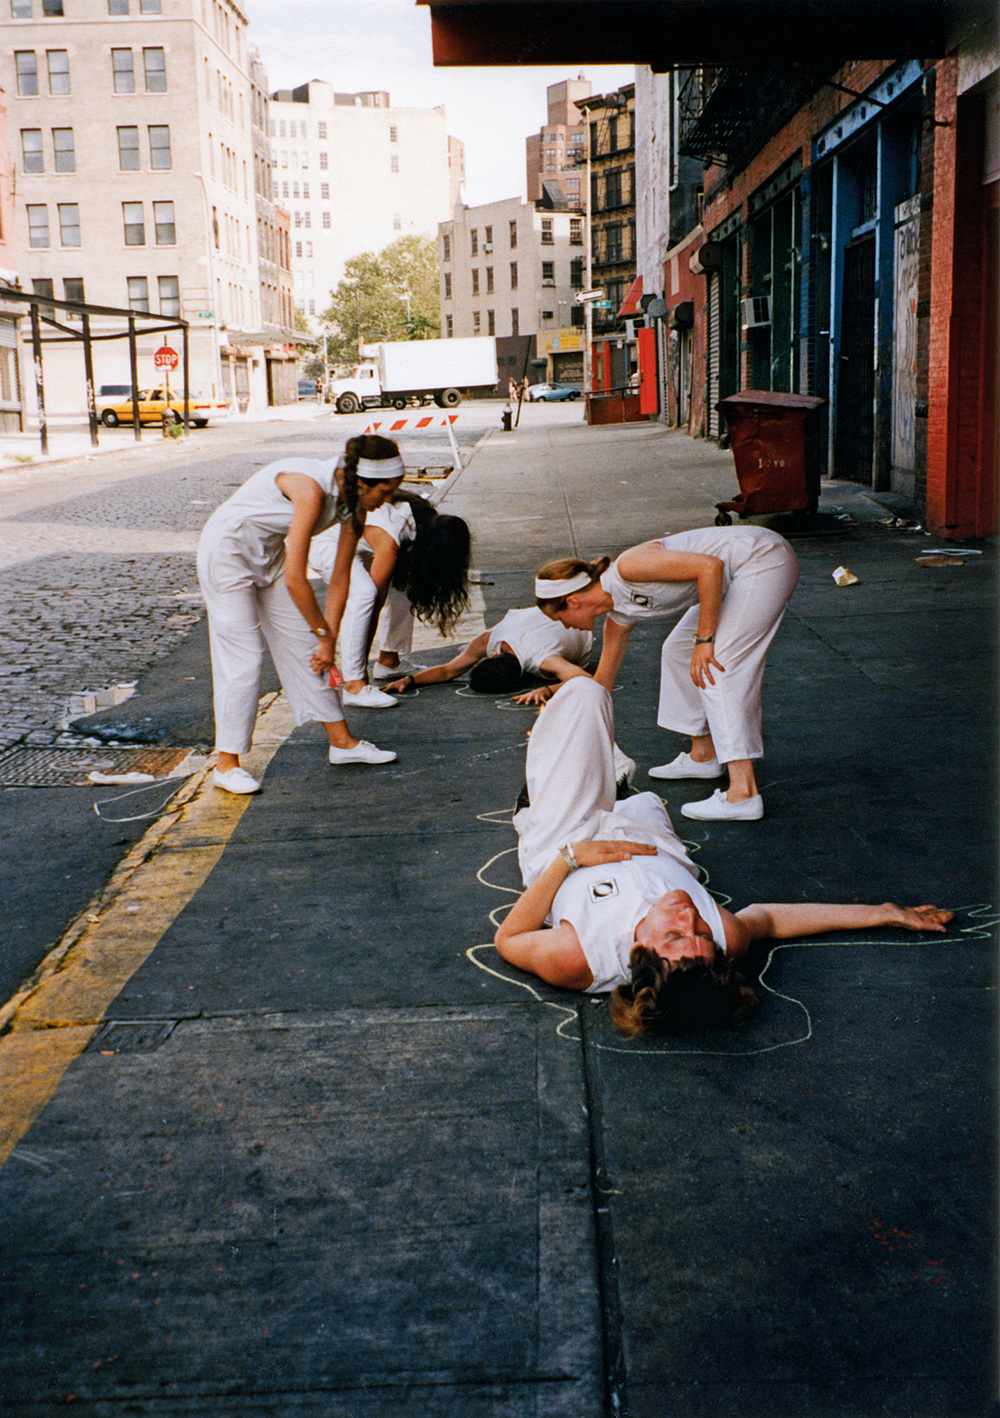 A street theater group doing scientific research in the meat packing district.